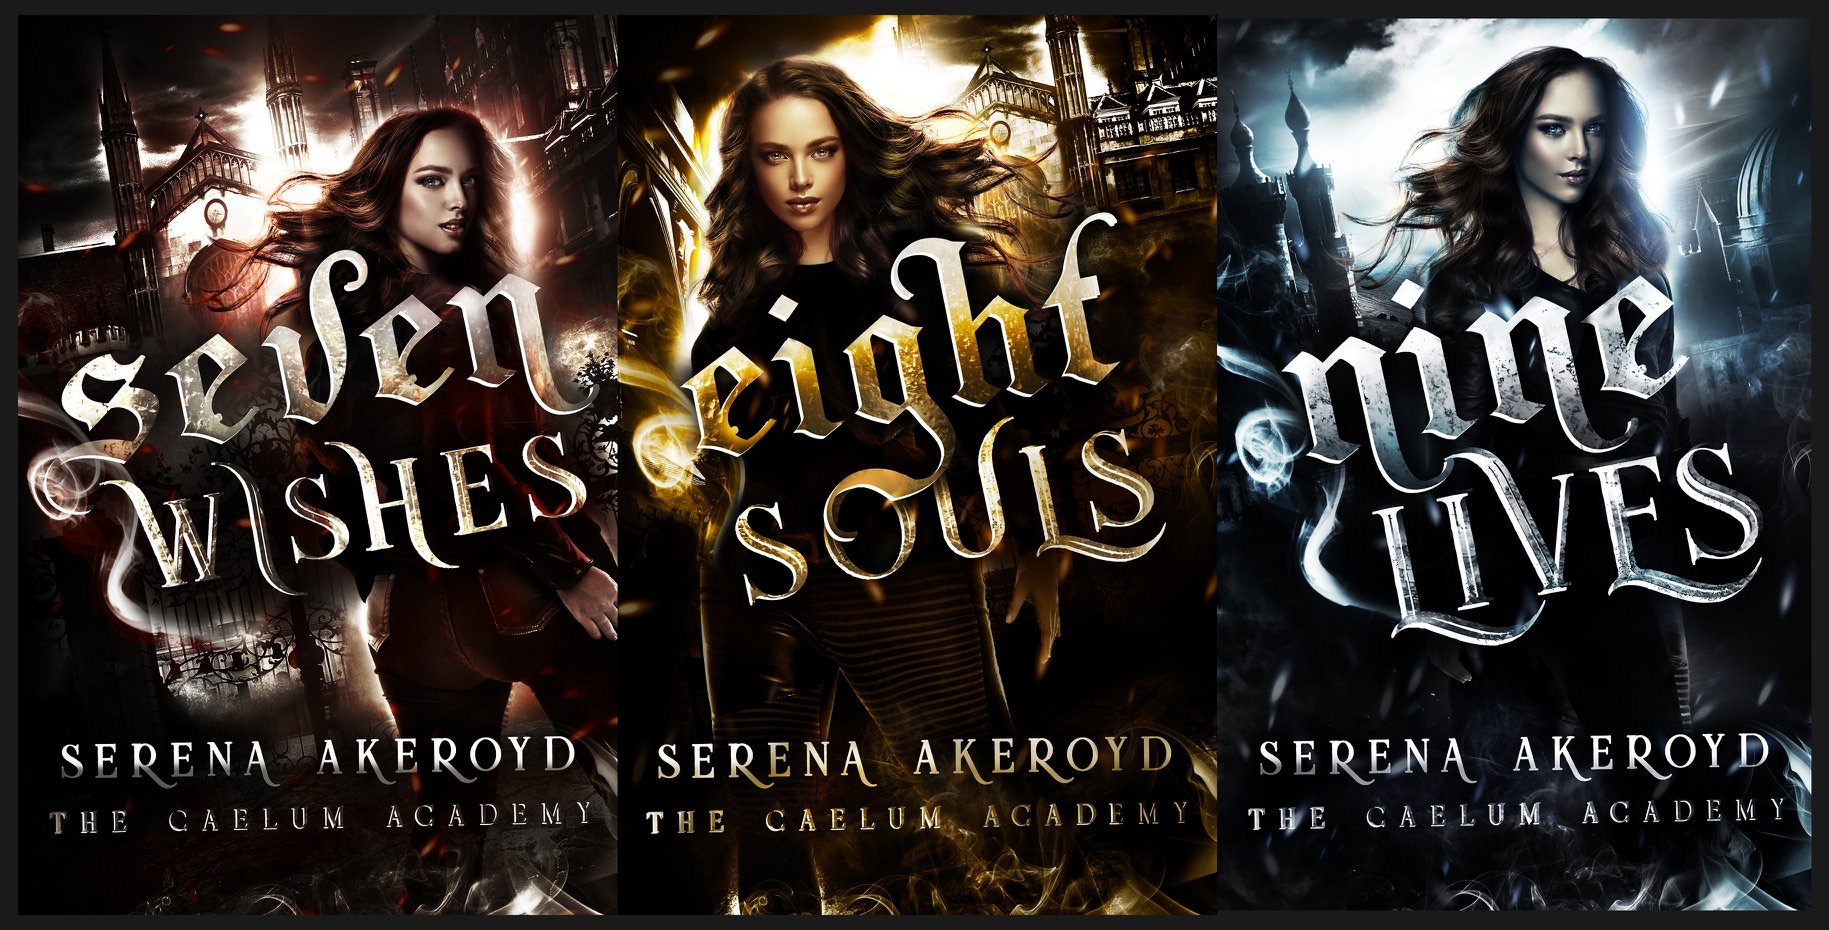 The Caelum Academy Trilogy by Serena Akeroyf